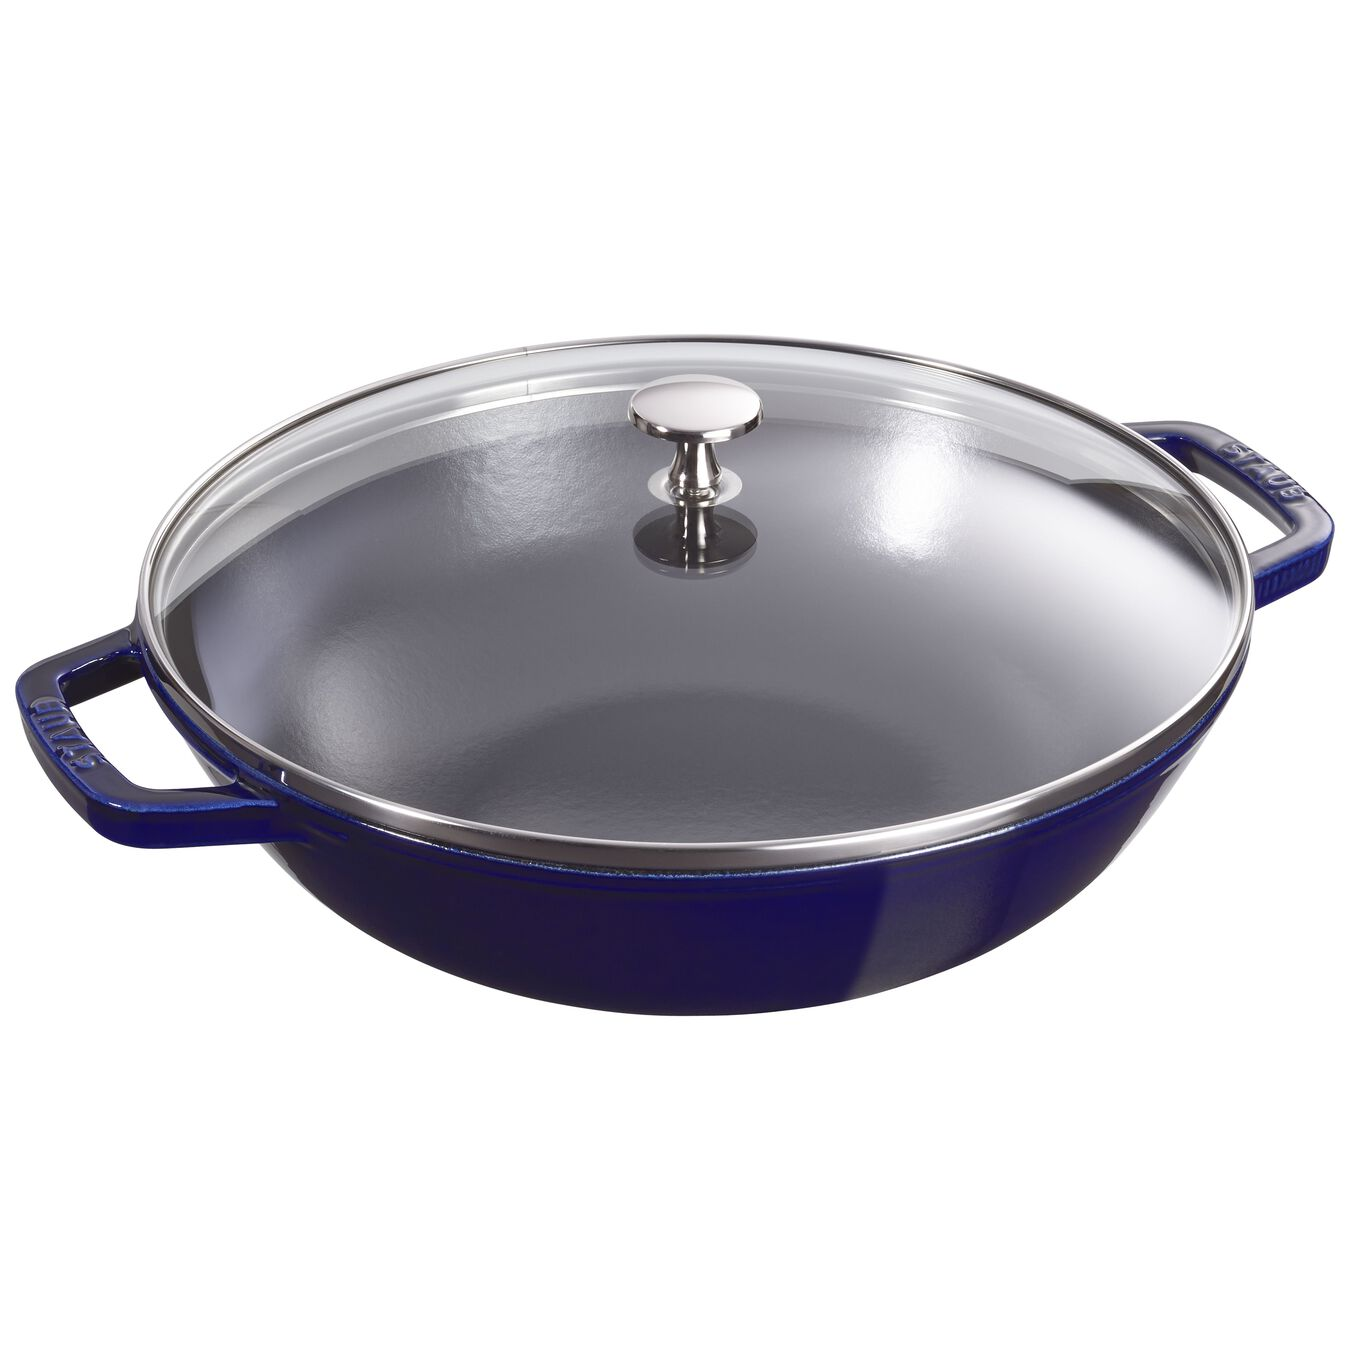 30 cm Cast iron Wok with glass lid, Dark-Blue,,large 1